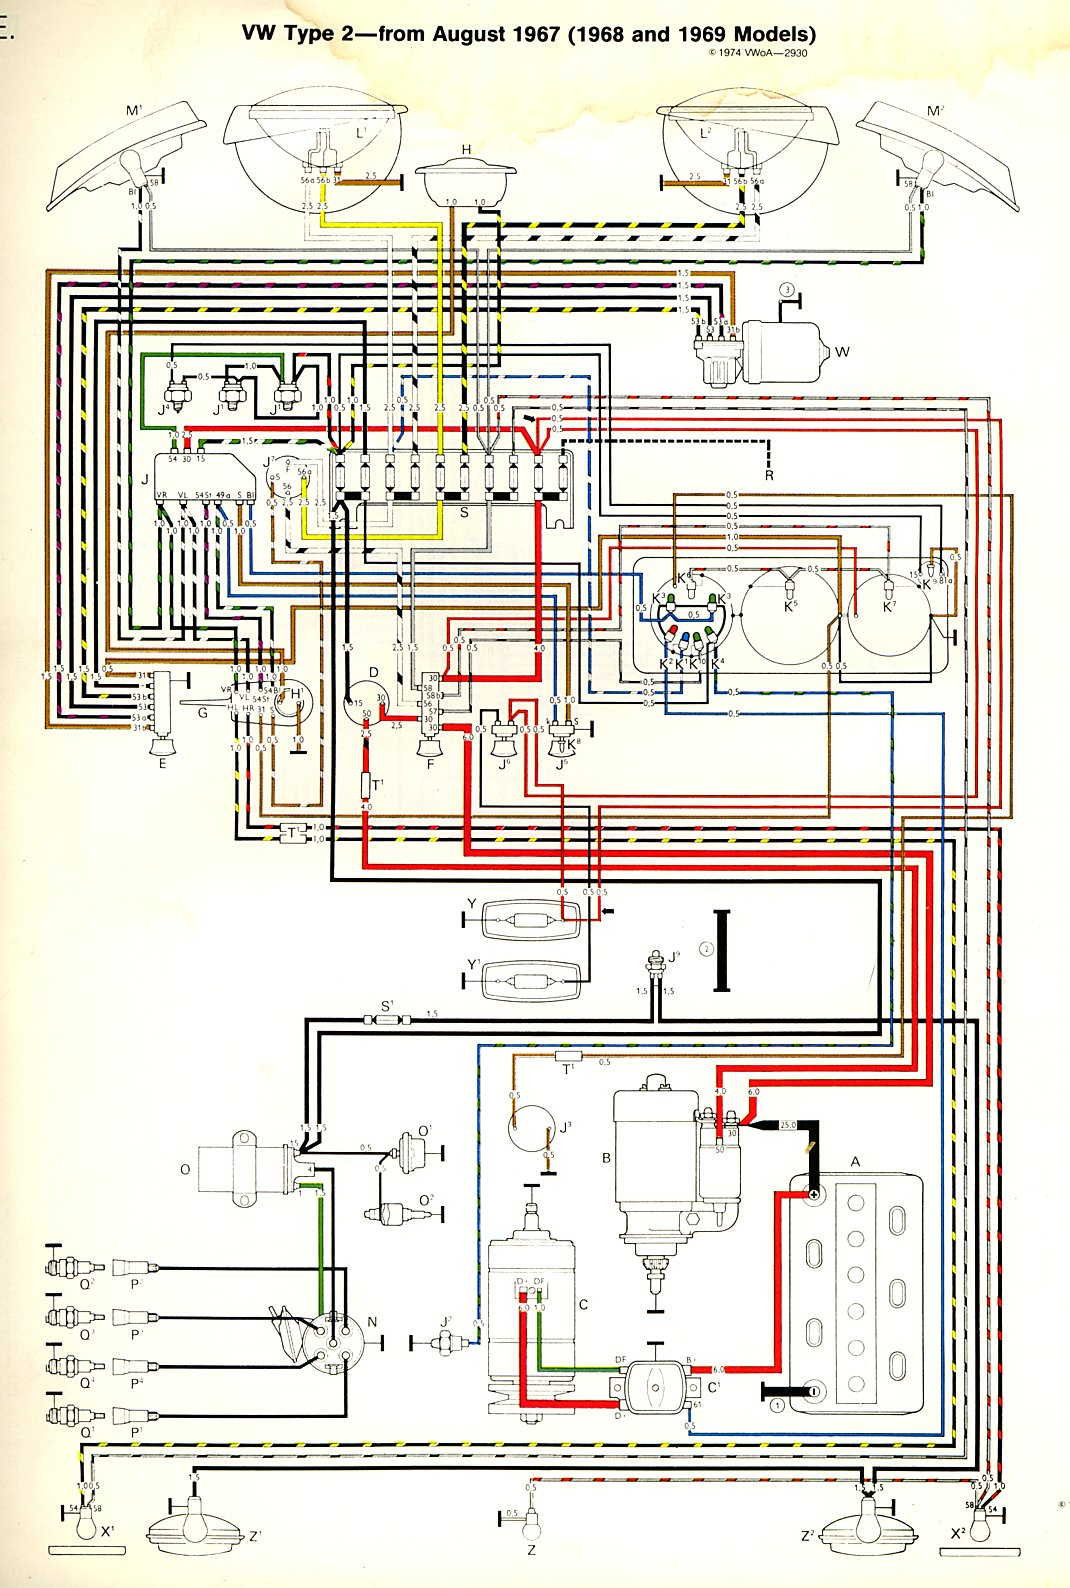 baybus_6869a 1968 vw beetle wiring diagram 1973 vw super beetle wiring diagram 1973 super beetle wiring harness at reclaimingppi.co